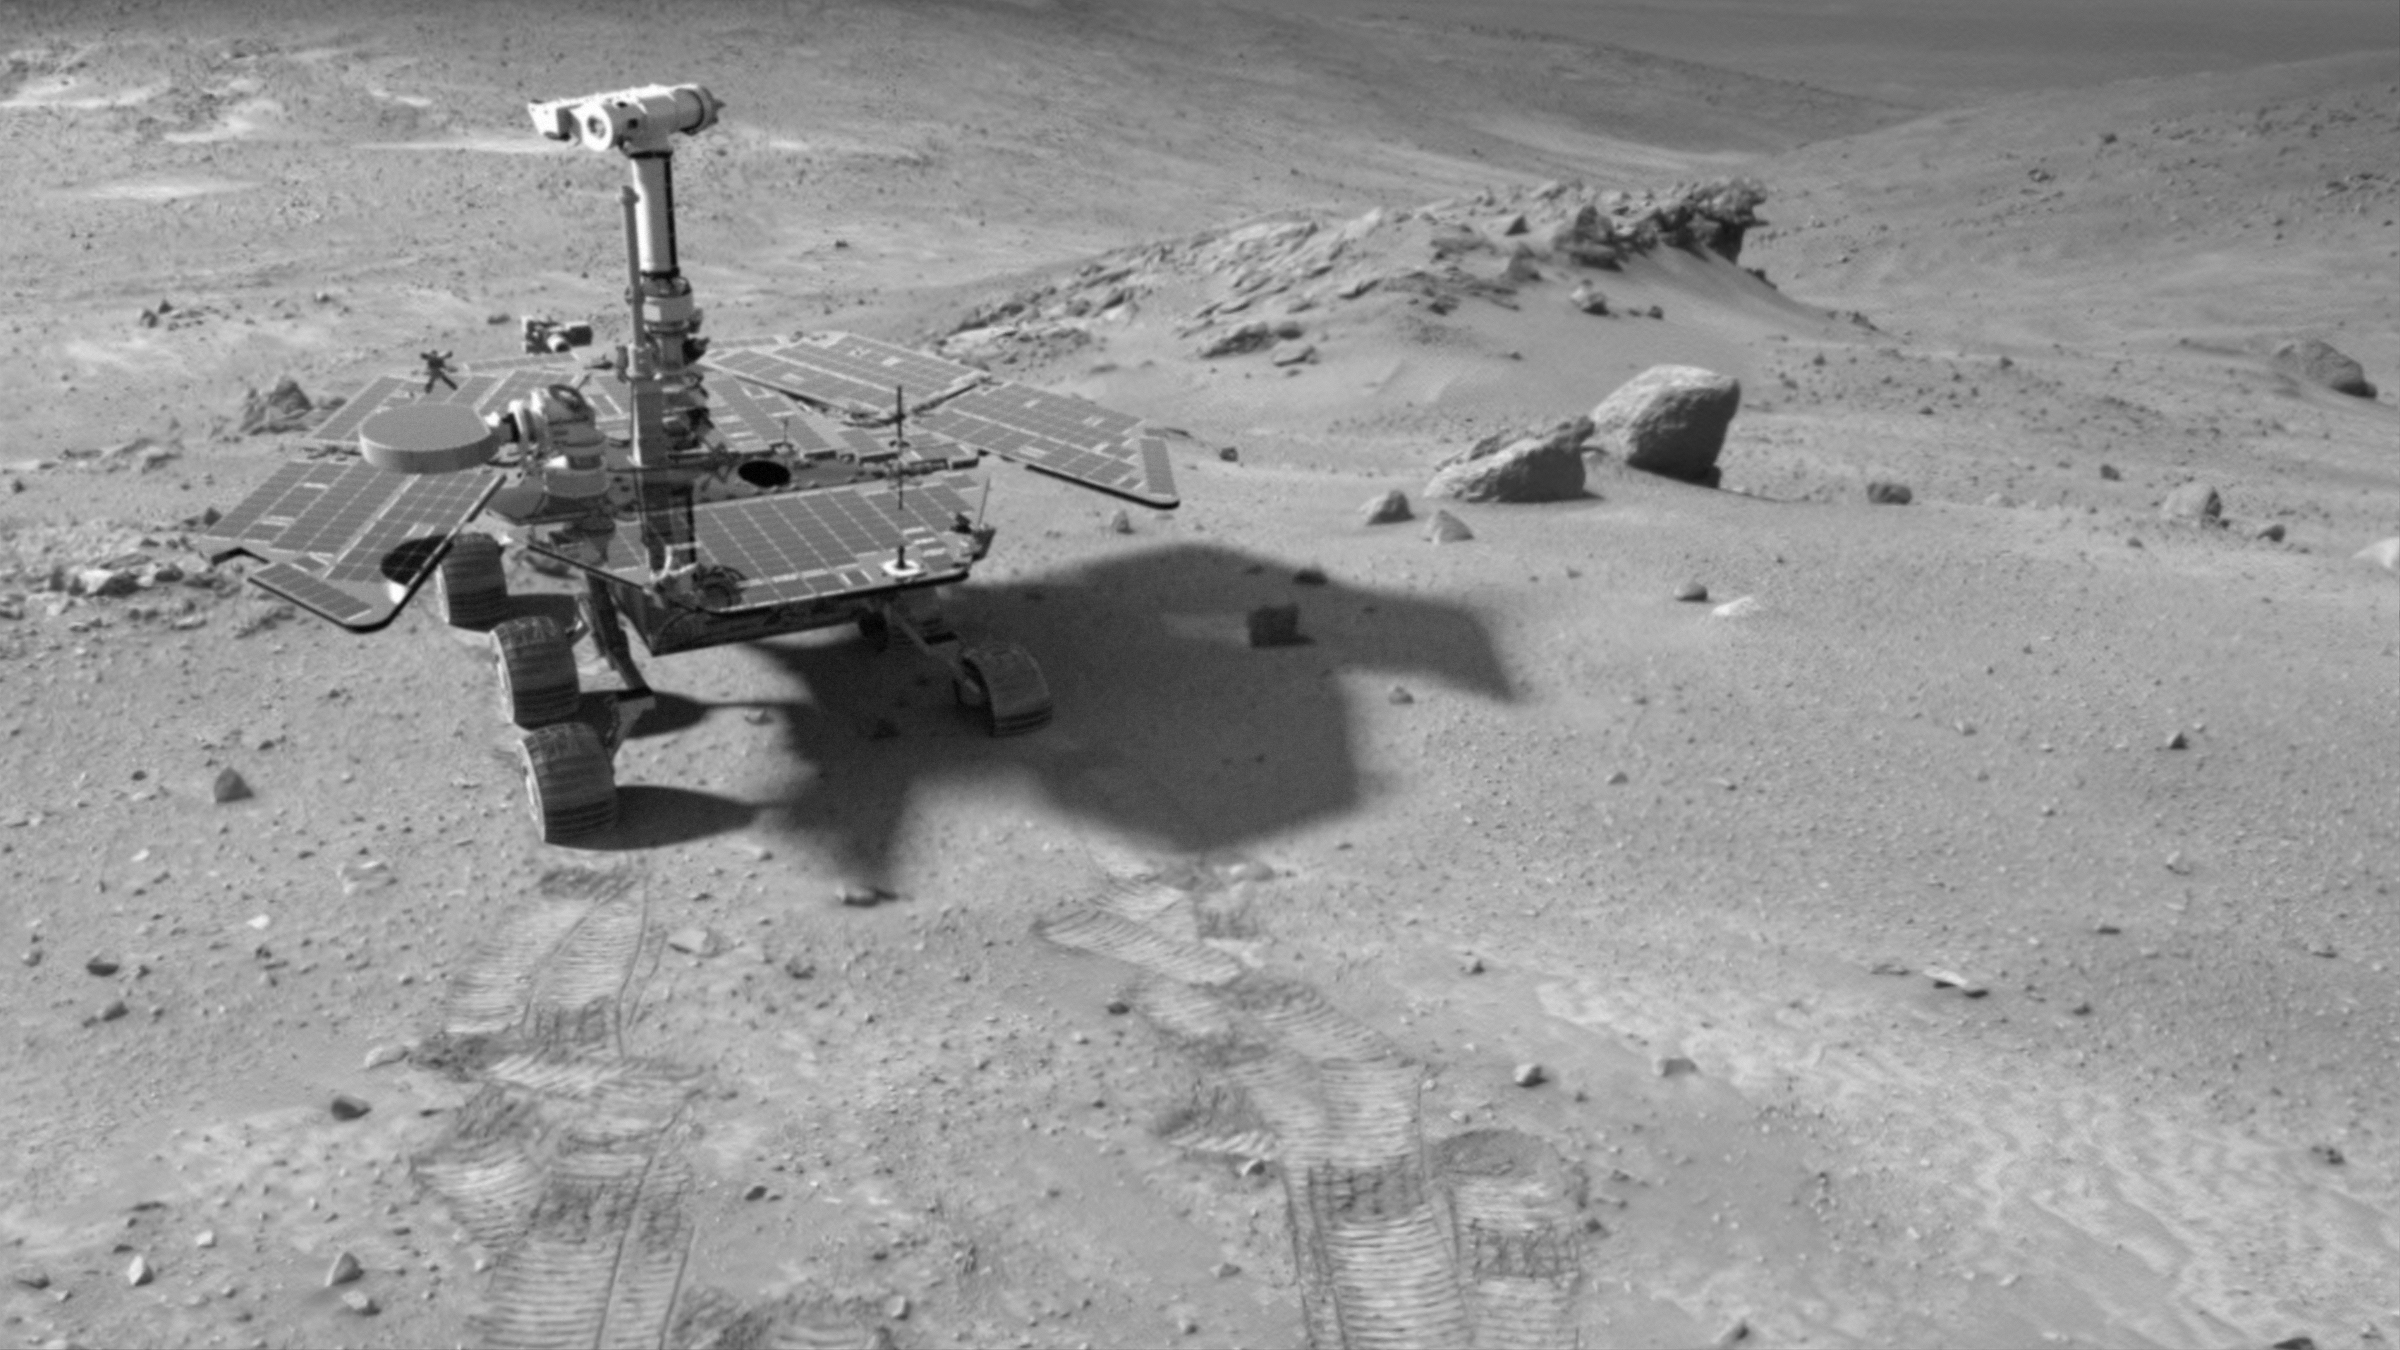 mars rover spirit - photo #15